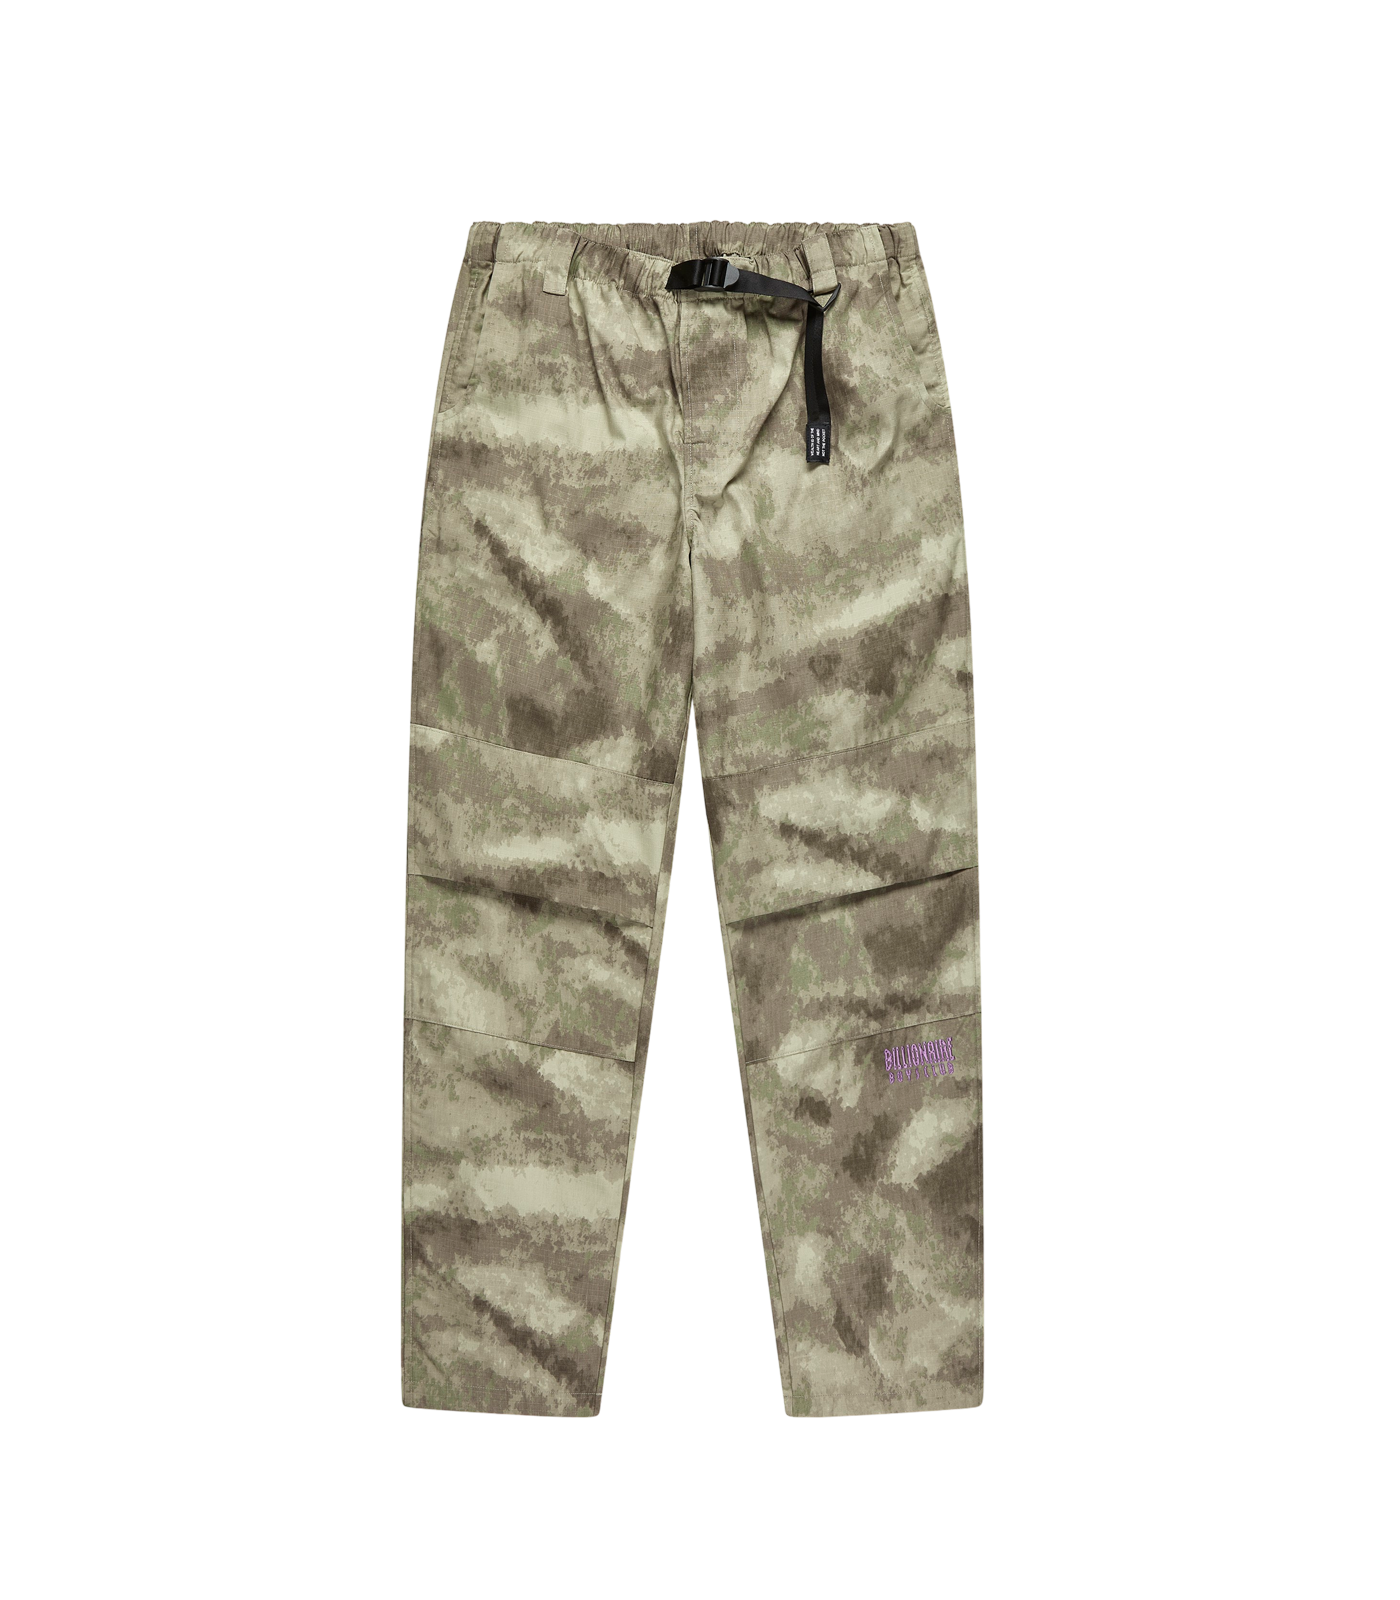 RIPSTOP COTTON CAMO BEACH PANT